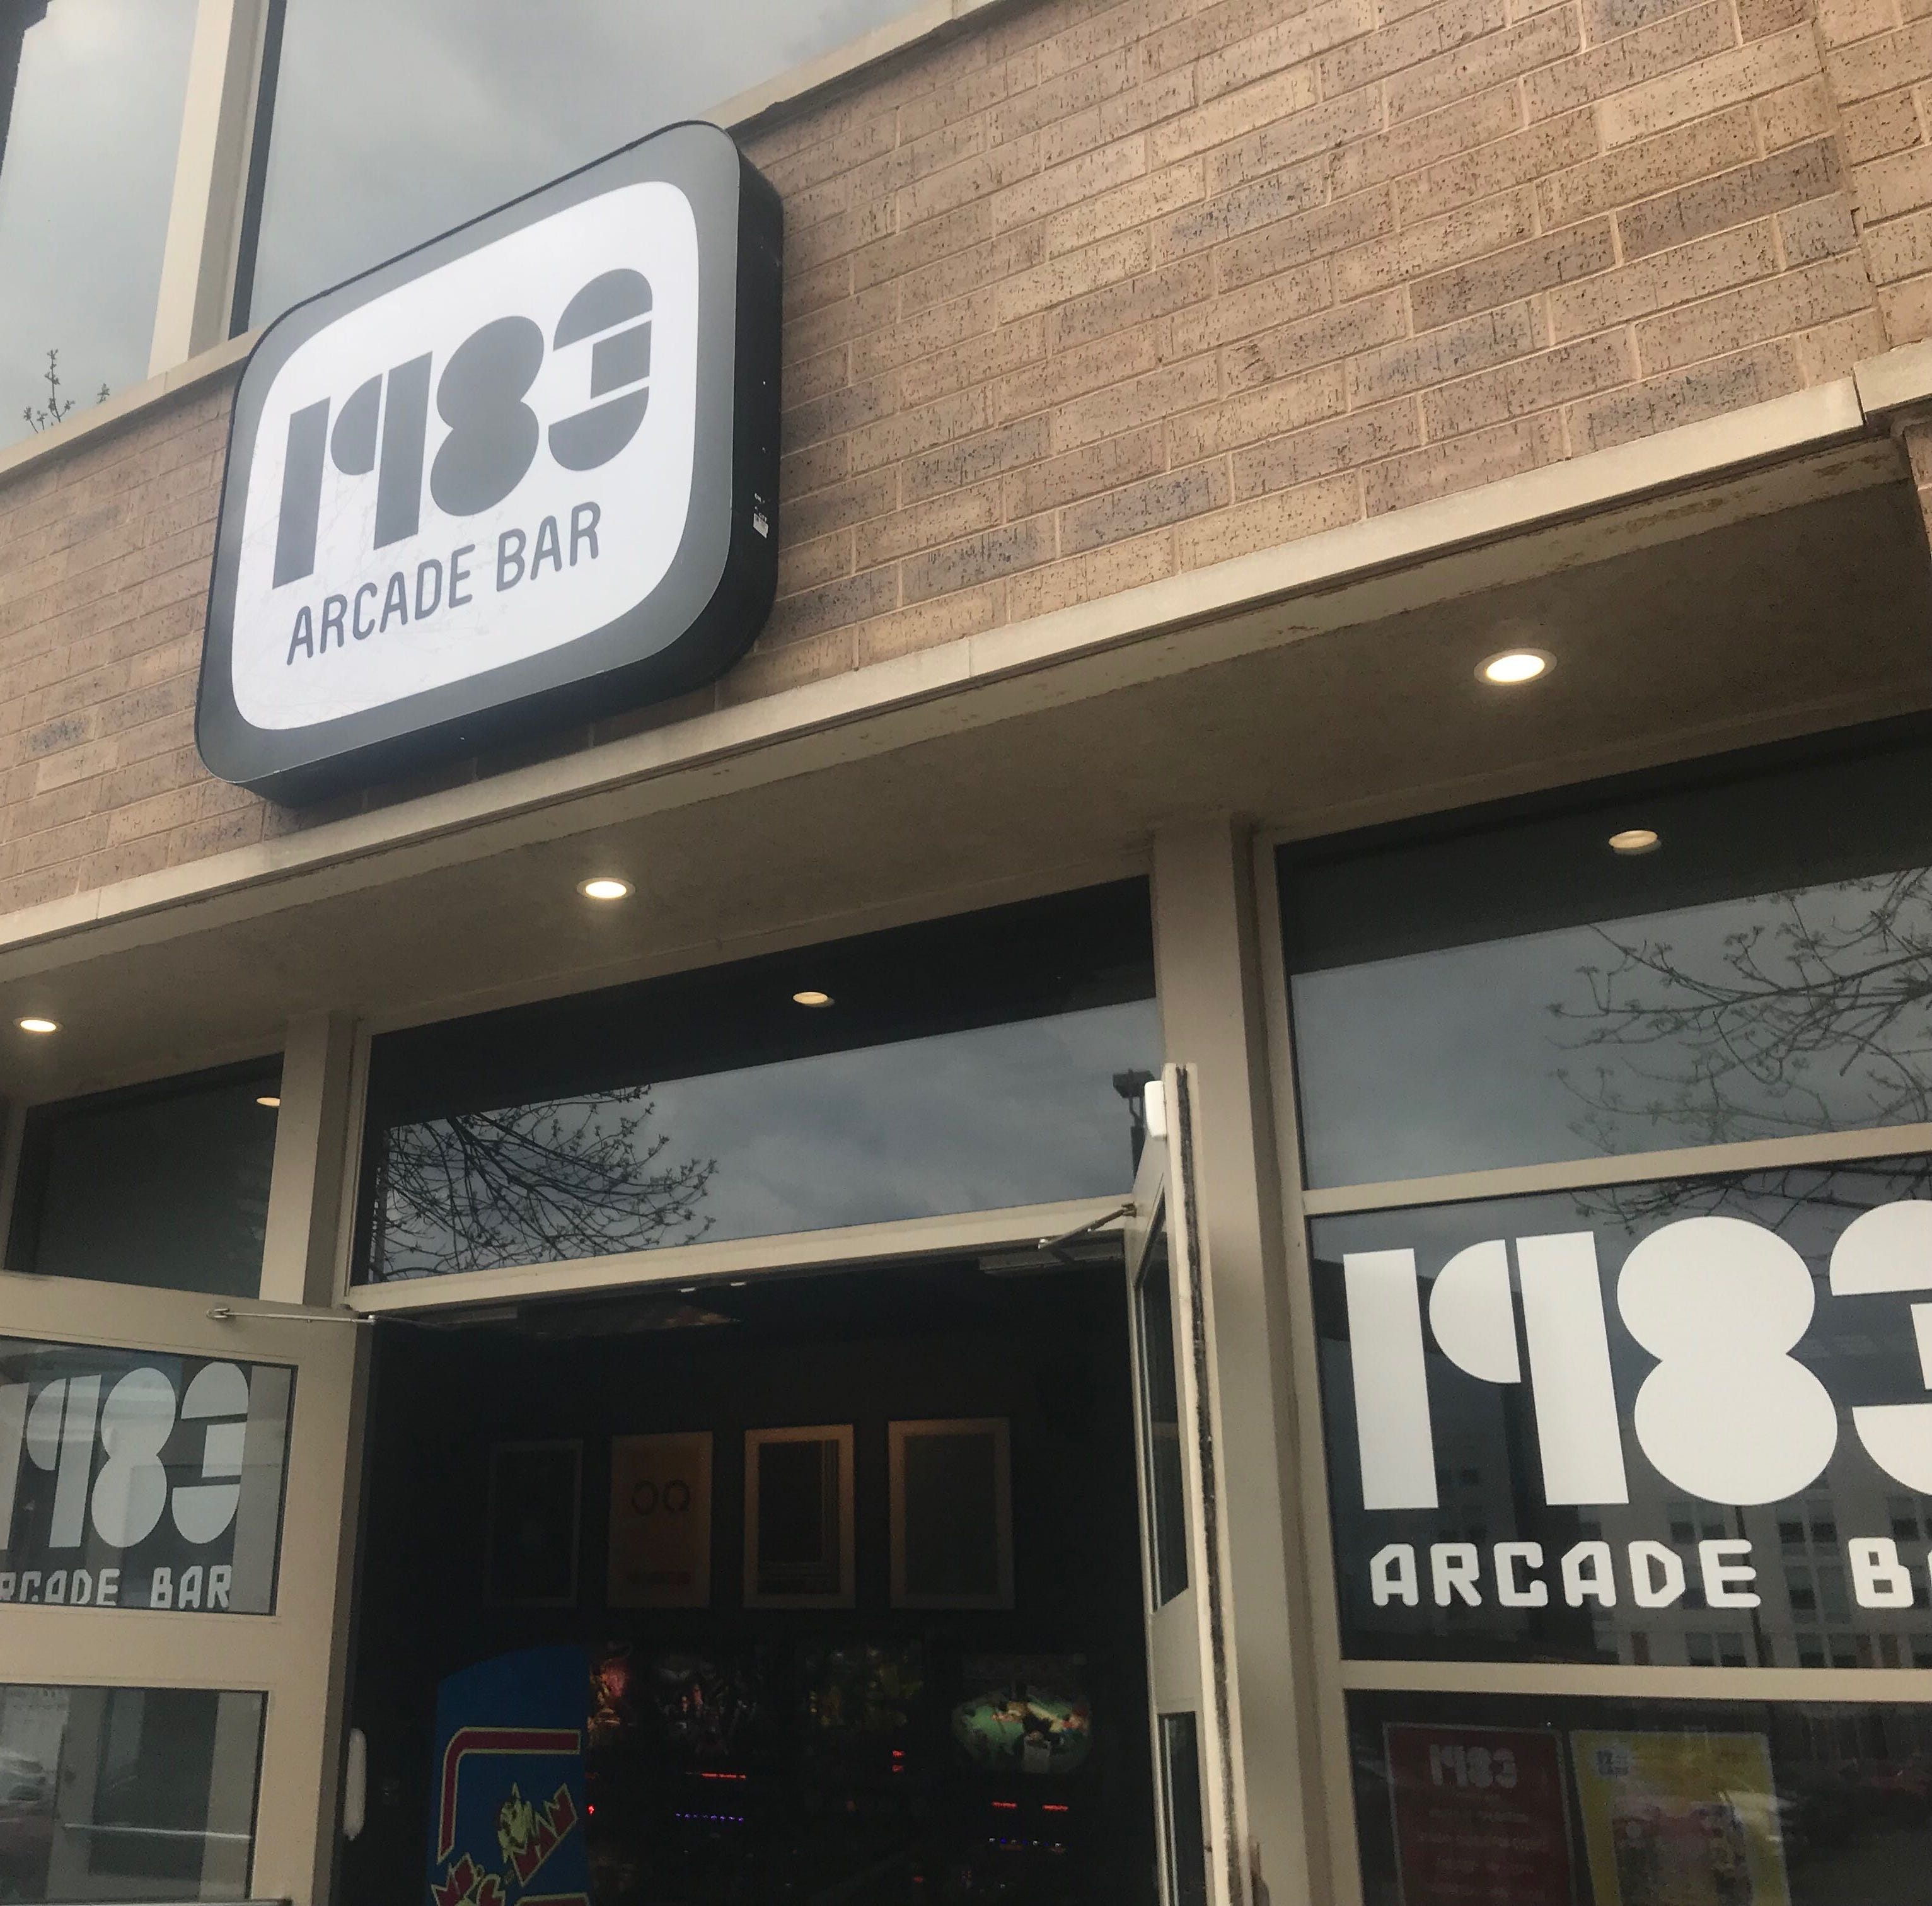 1983 Arcade Bar on Old World Third Street to close as new owner takes over this summer